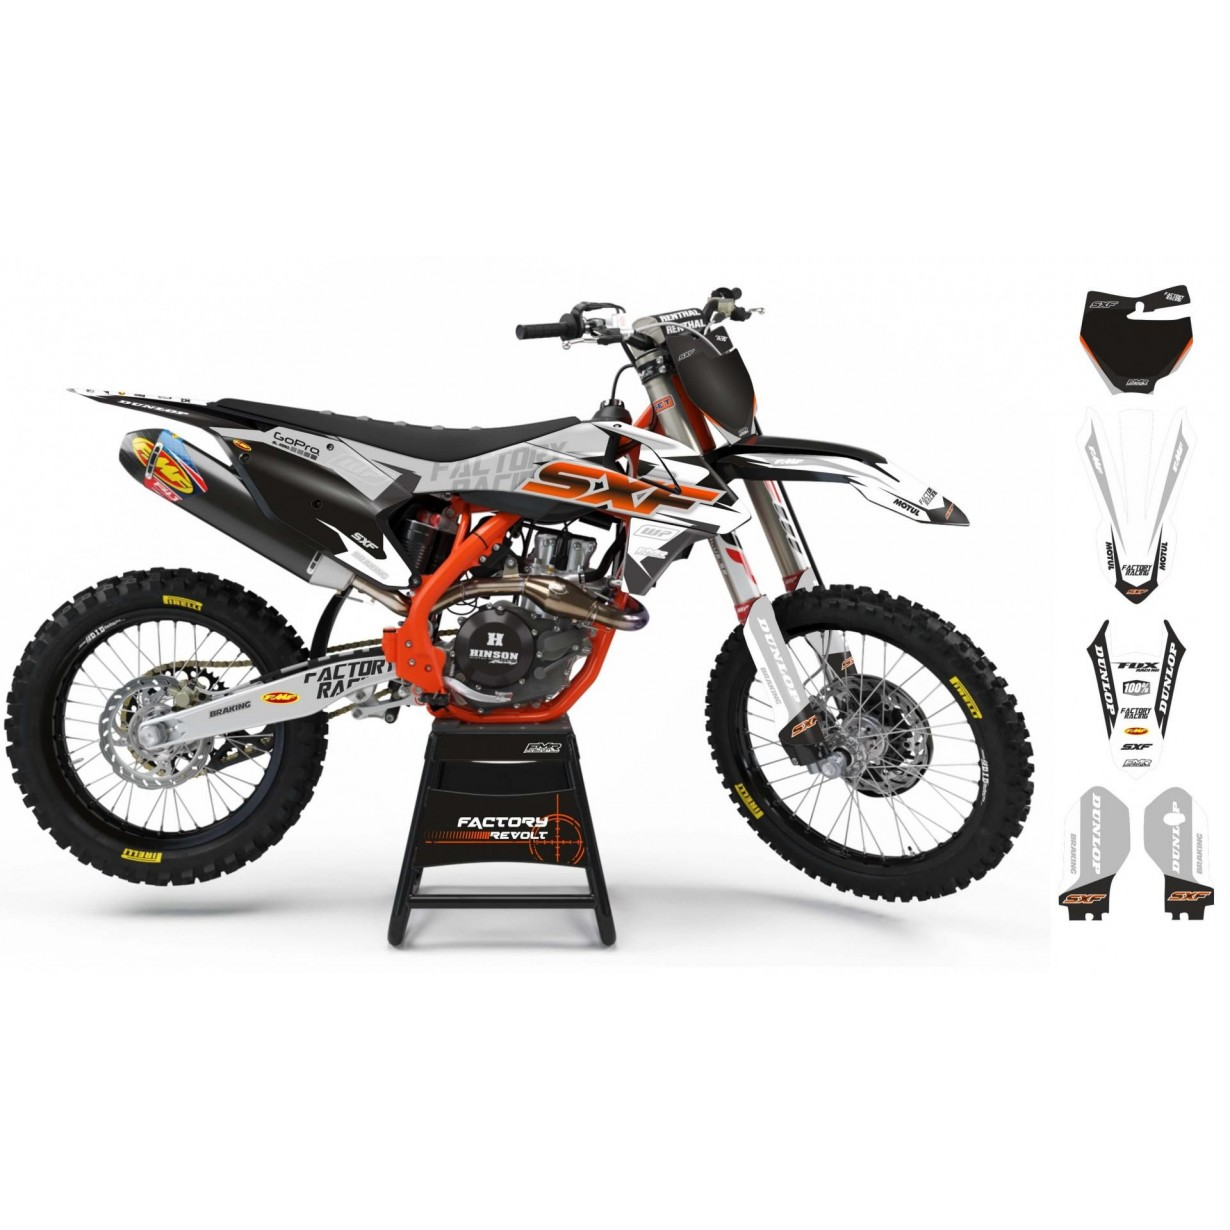 Kit déco Perso KTM Factory Revolt A26C1 white/grey